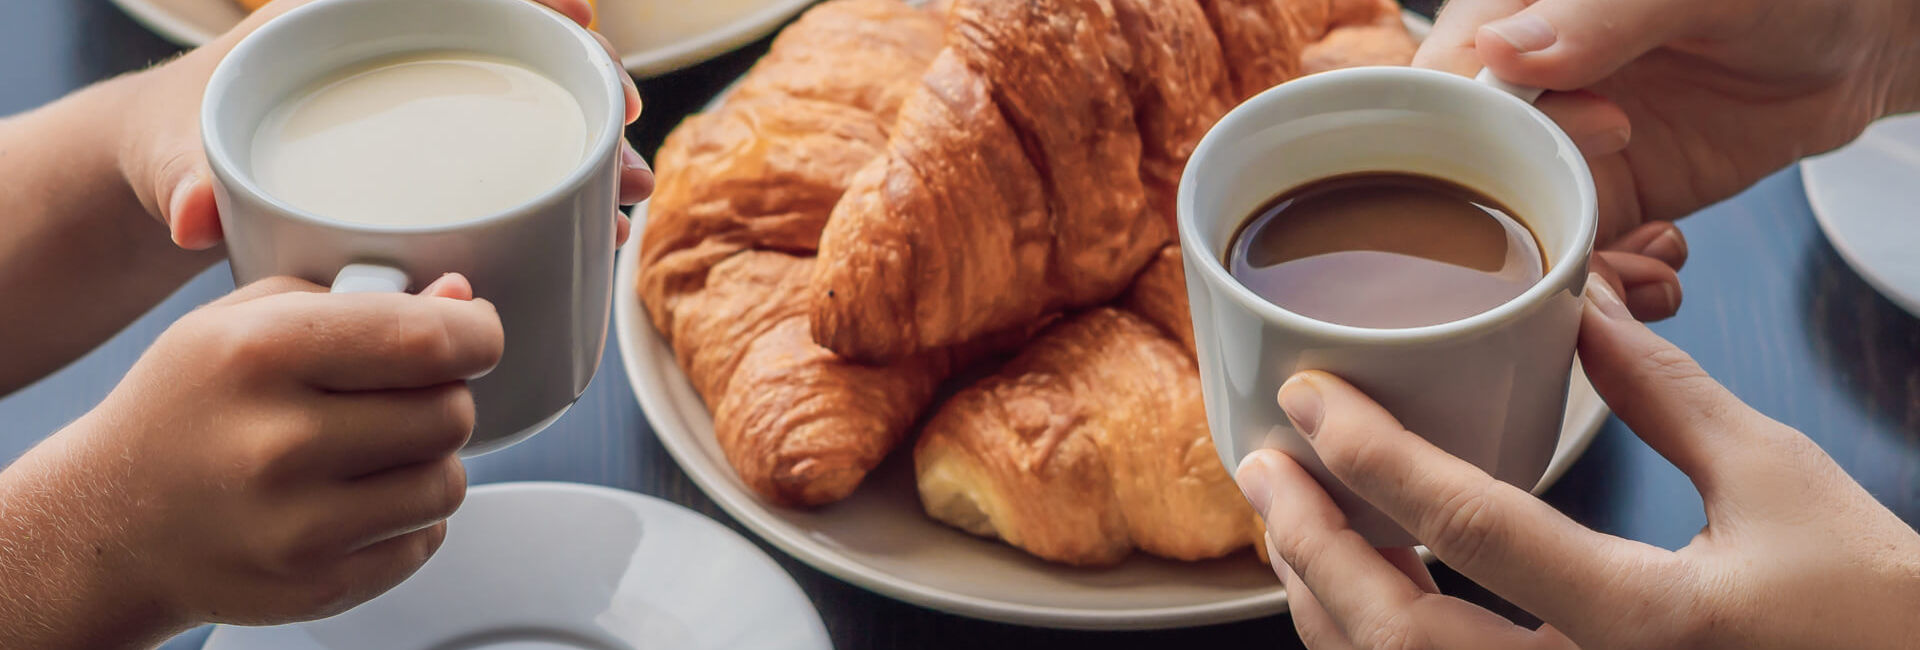 Coffee and croissants - Gasterij 't Karrewiel